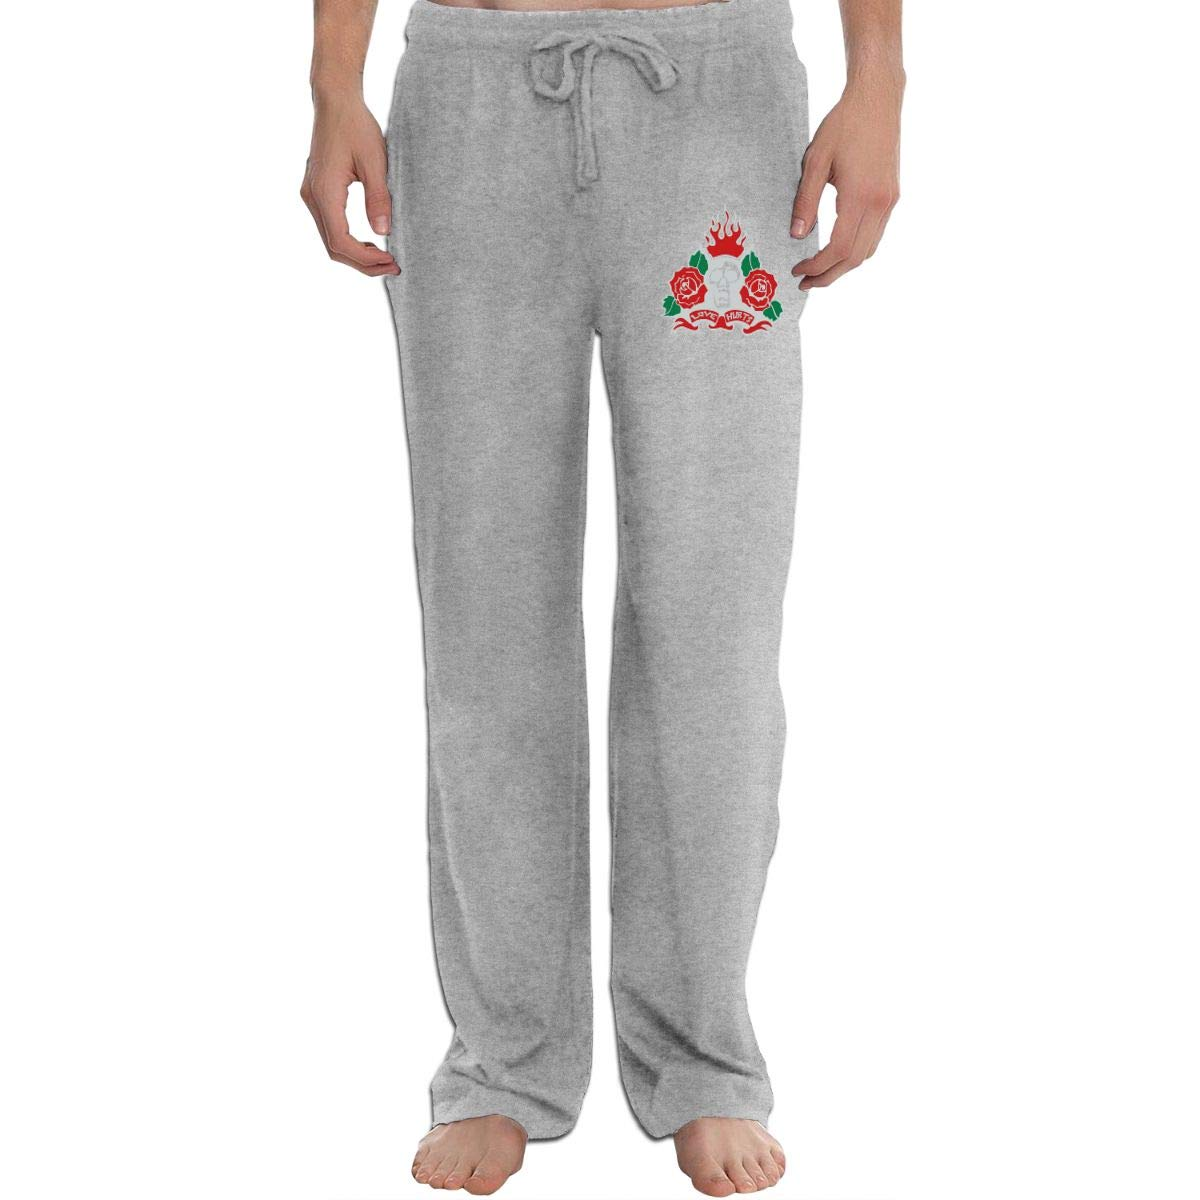 Love Hurts Mens Sweatpants Extra Long CottonSleep Pants for Mans